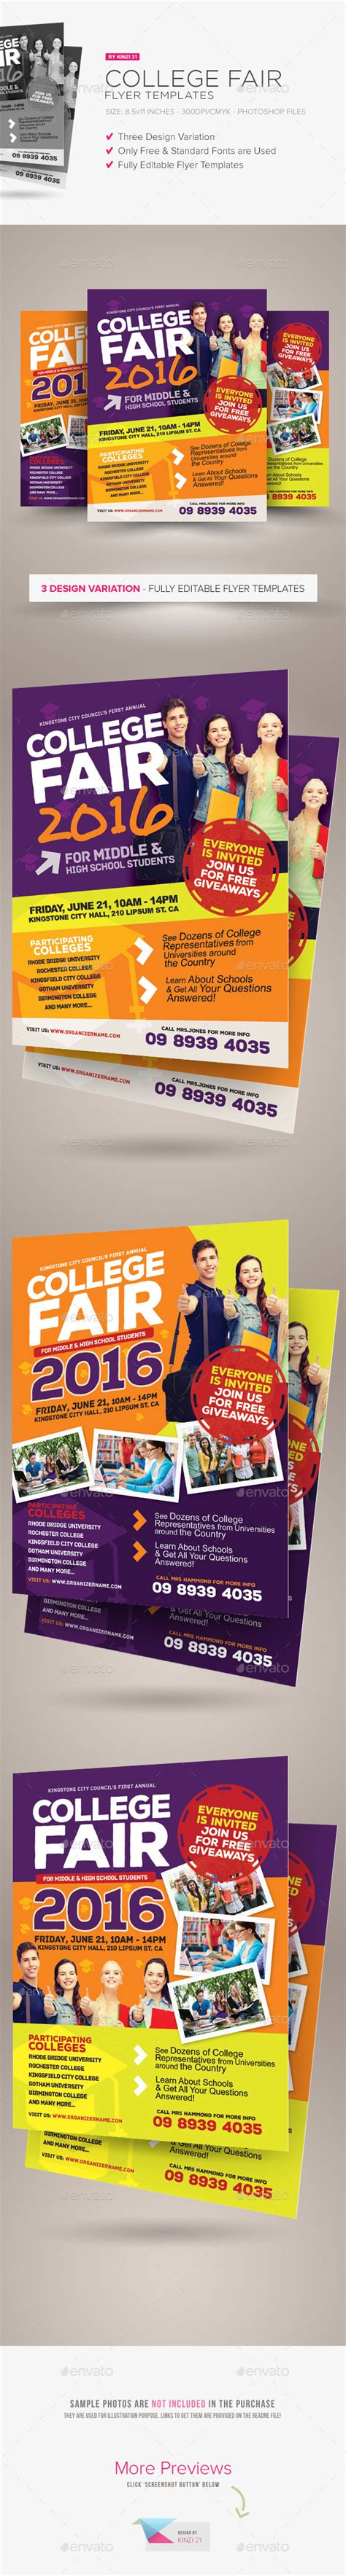 College Fair Flyer Template 187 Dondrup Com College Fair Flyer Template